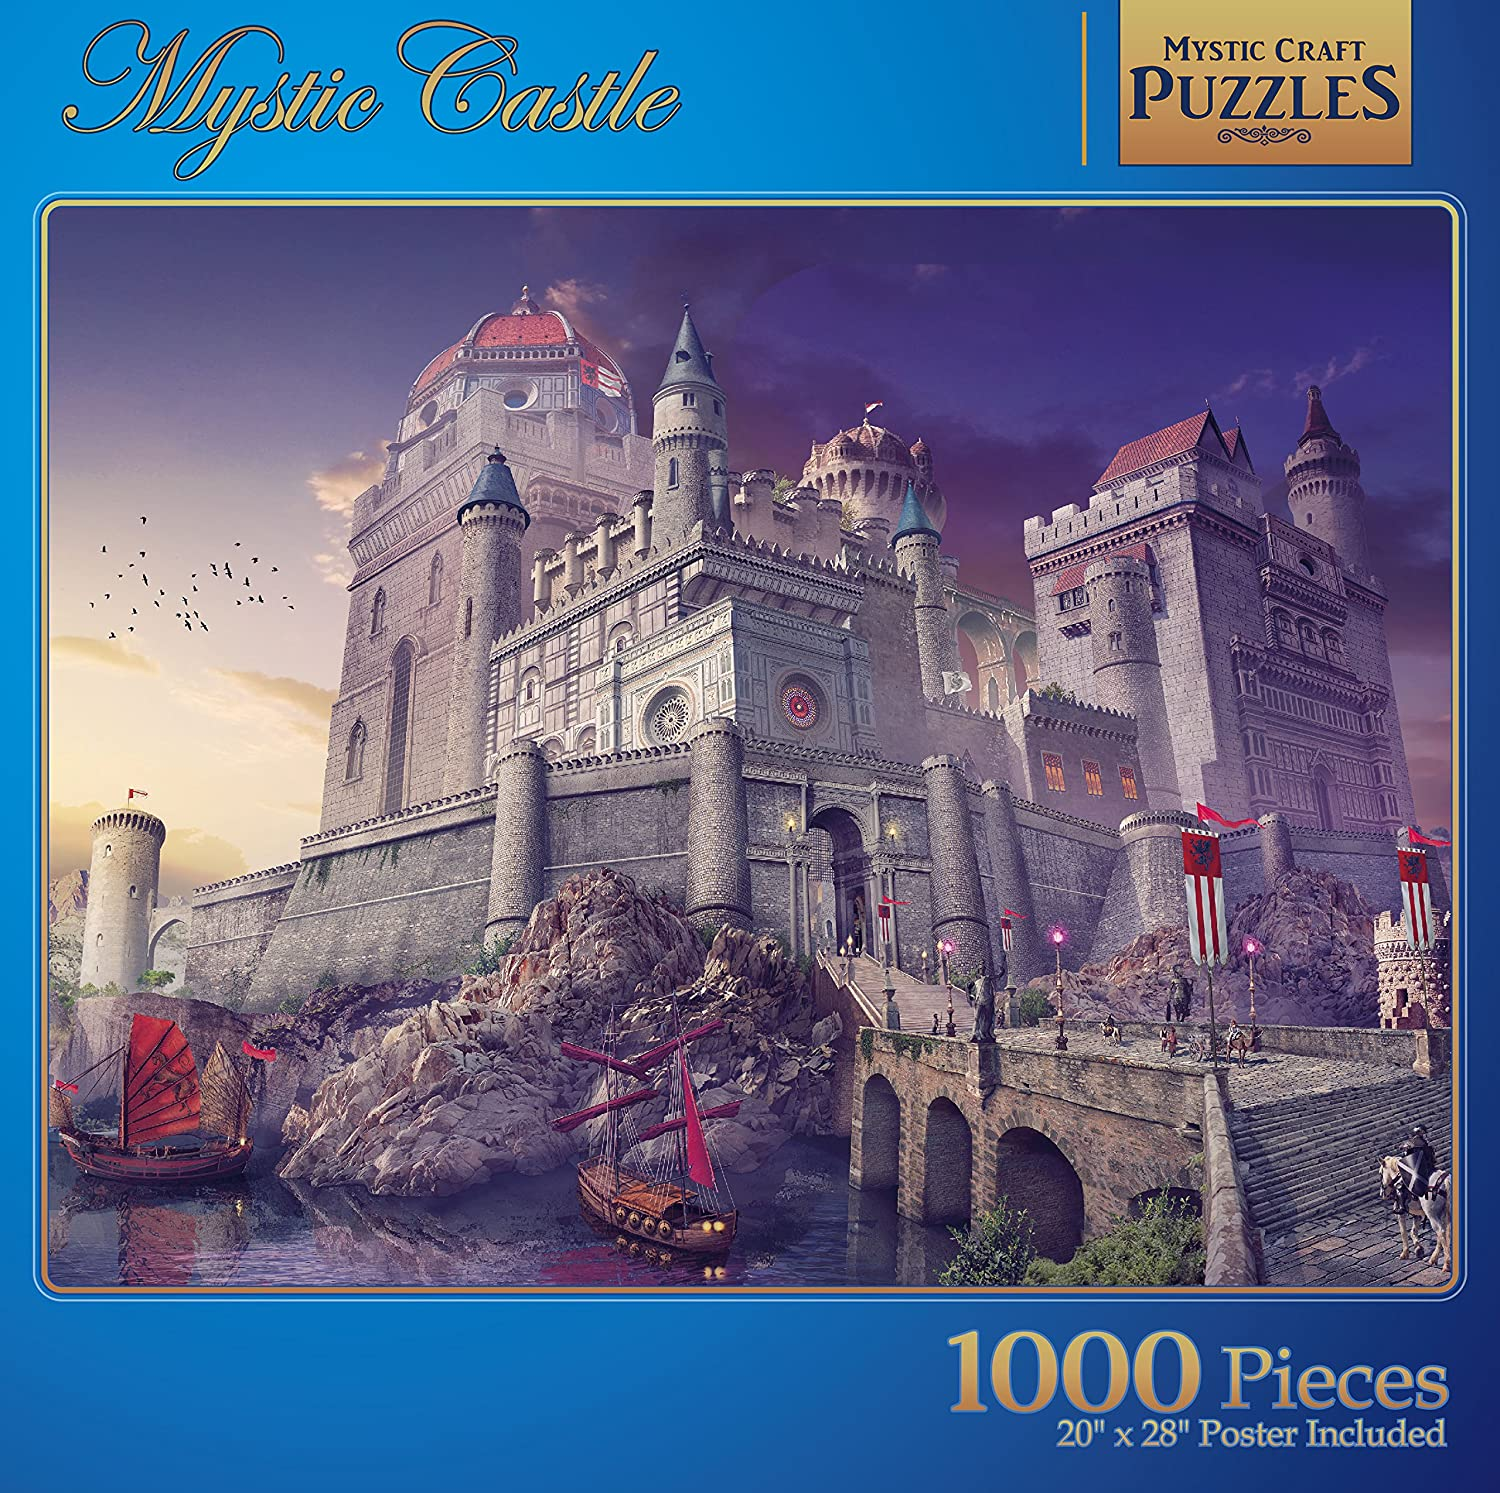 Mystic Castle Jigsaw Puzzle 1000 Piece Jigsaw Puzzle by Mystic Craft Puzzles